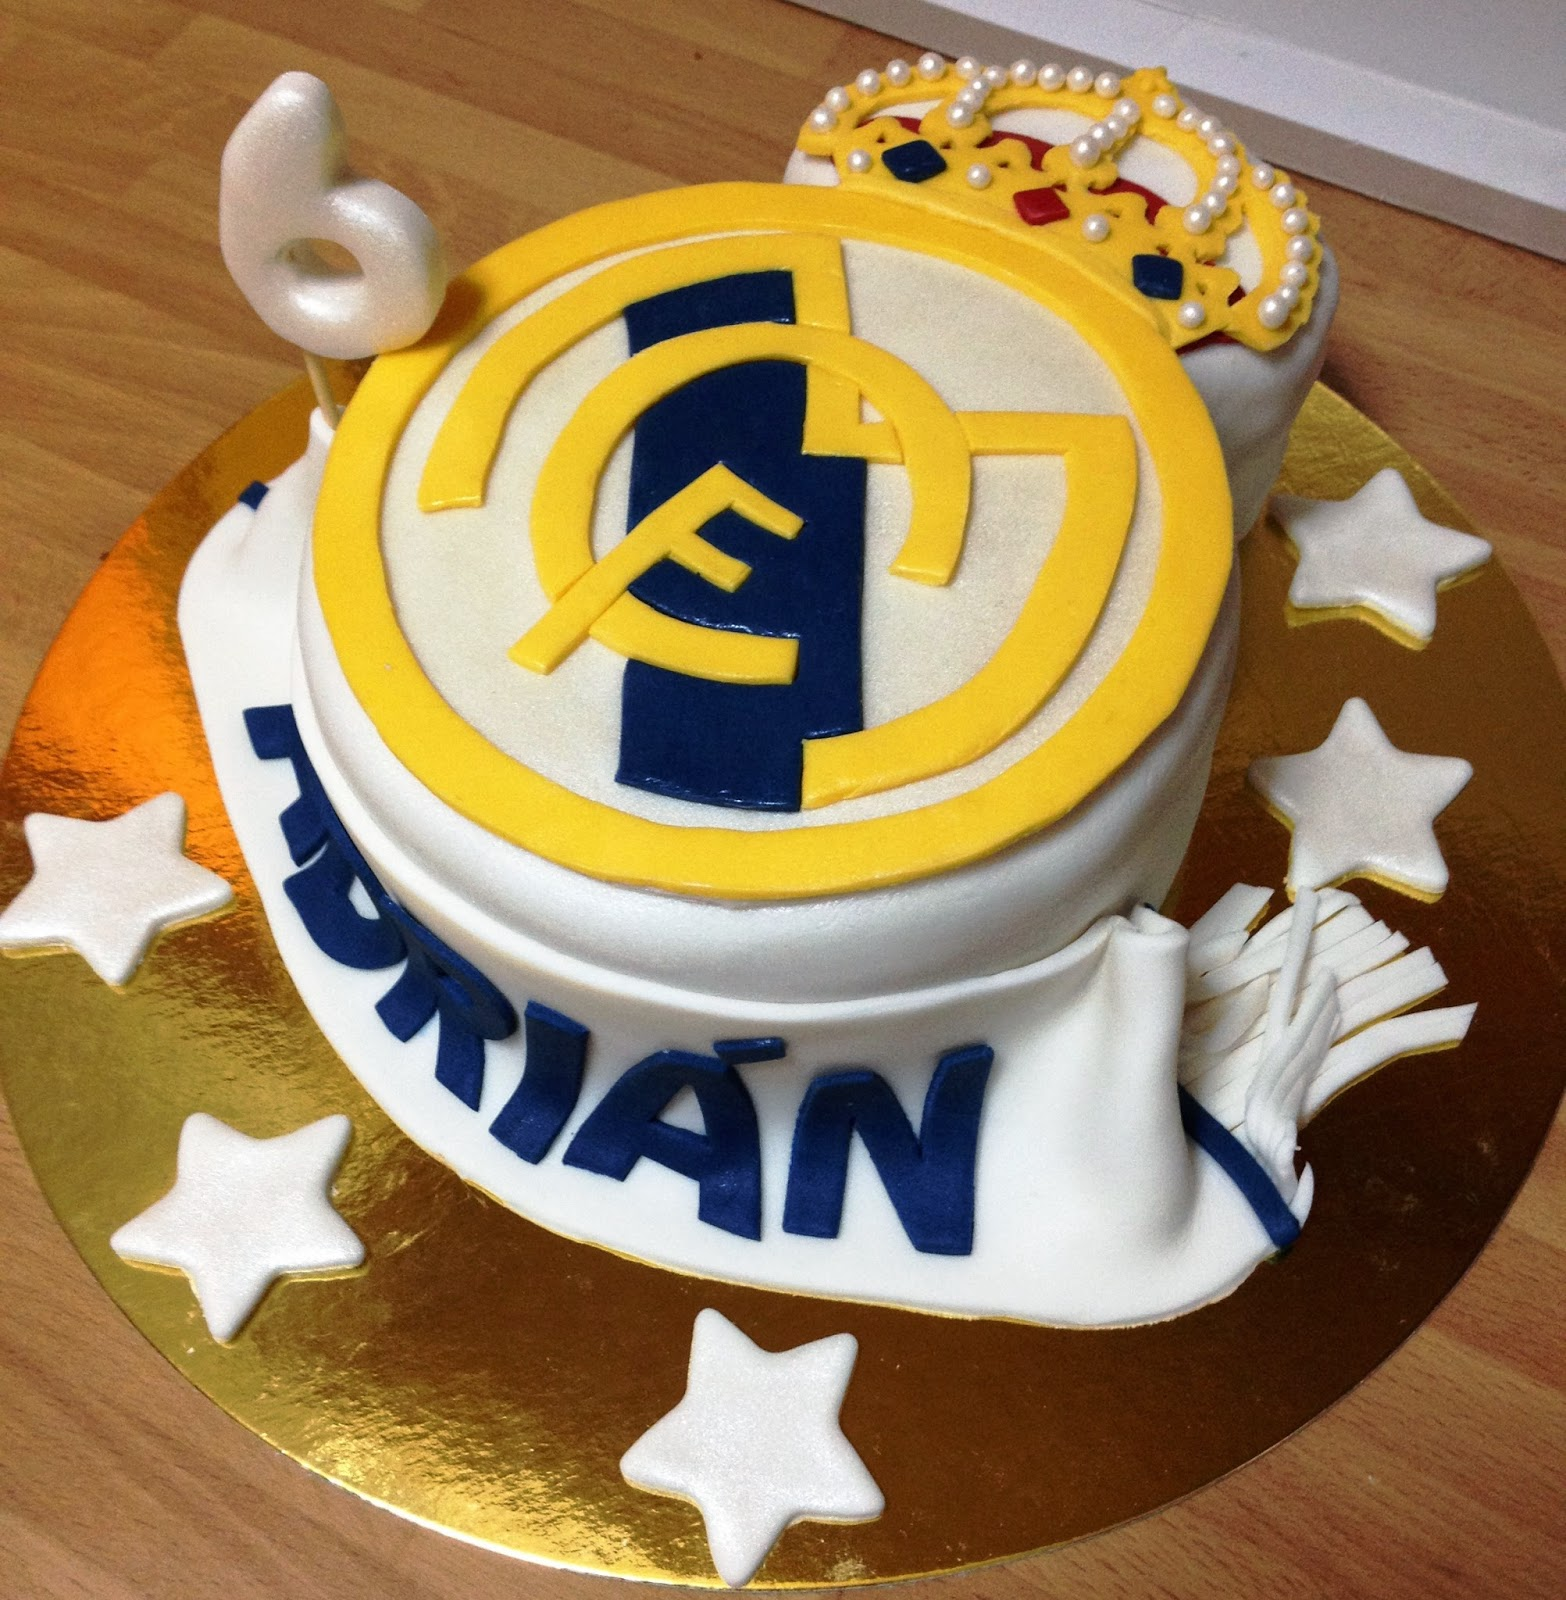 tarta fondant real madrid, real madrid, tarta torta, fondant